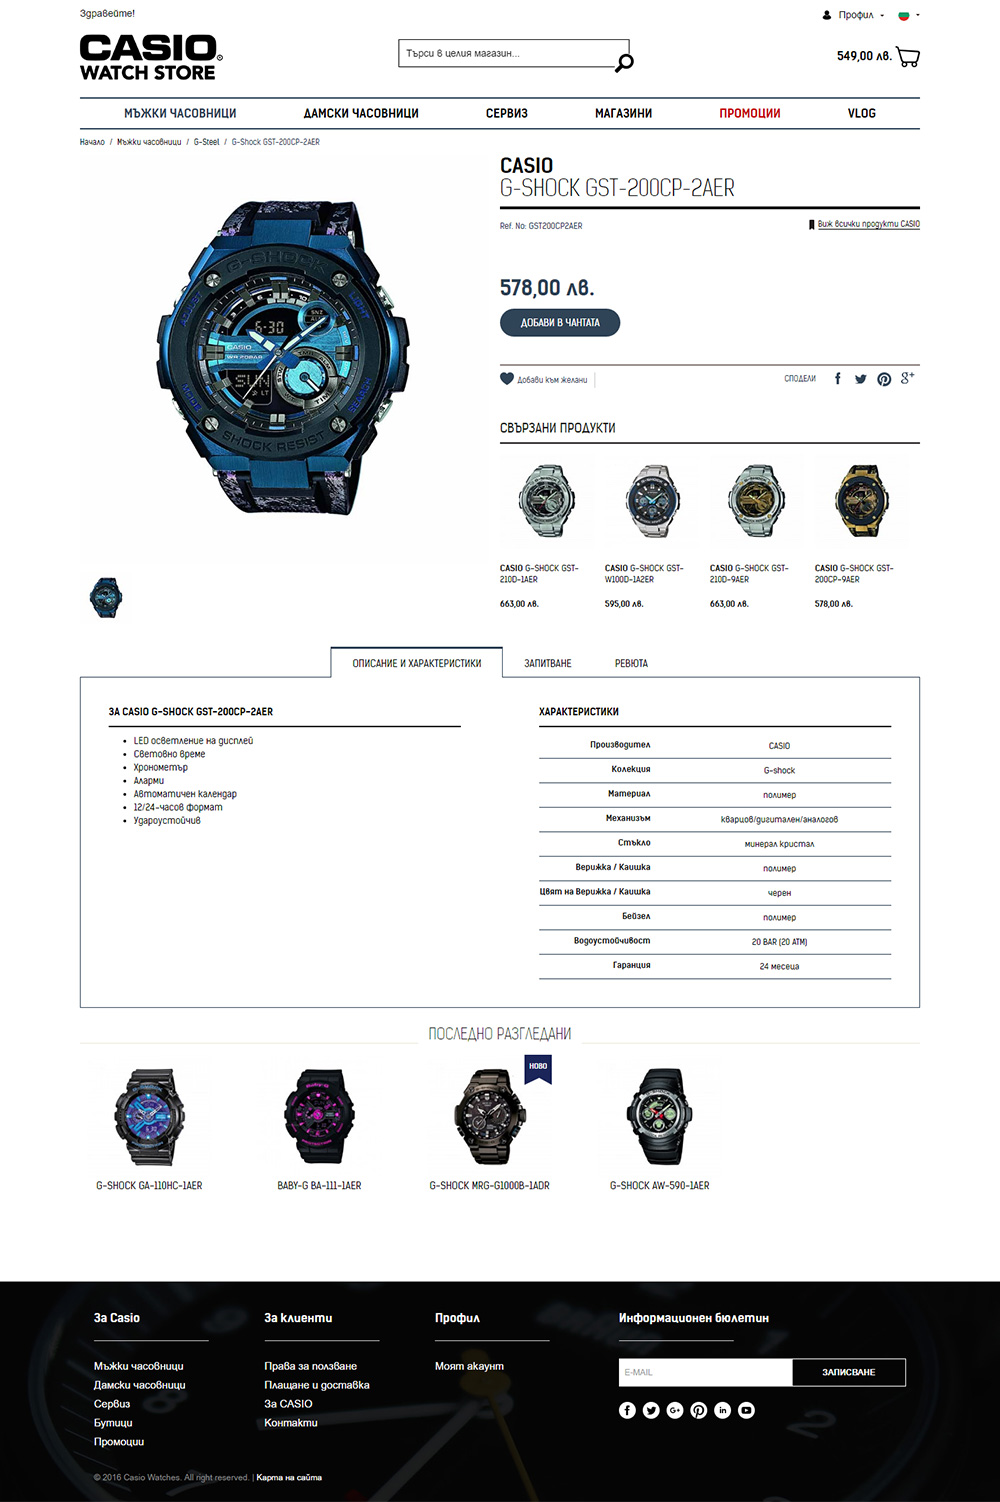 Online store for Casio Watch Store, Giulian - Online Shops, Stenik